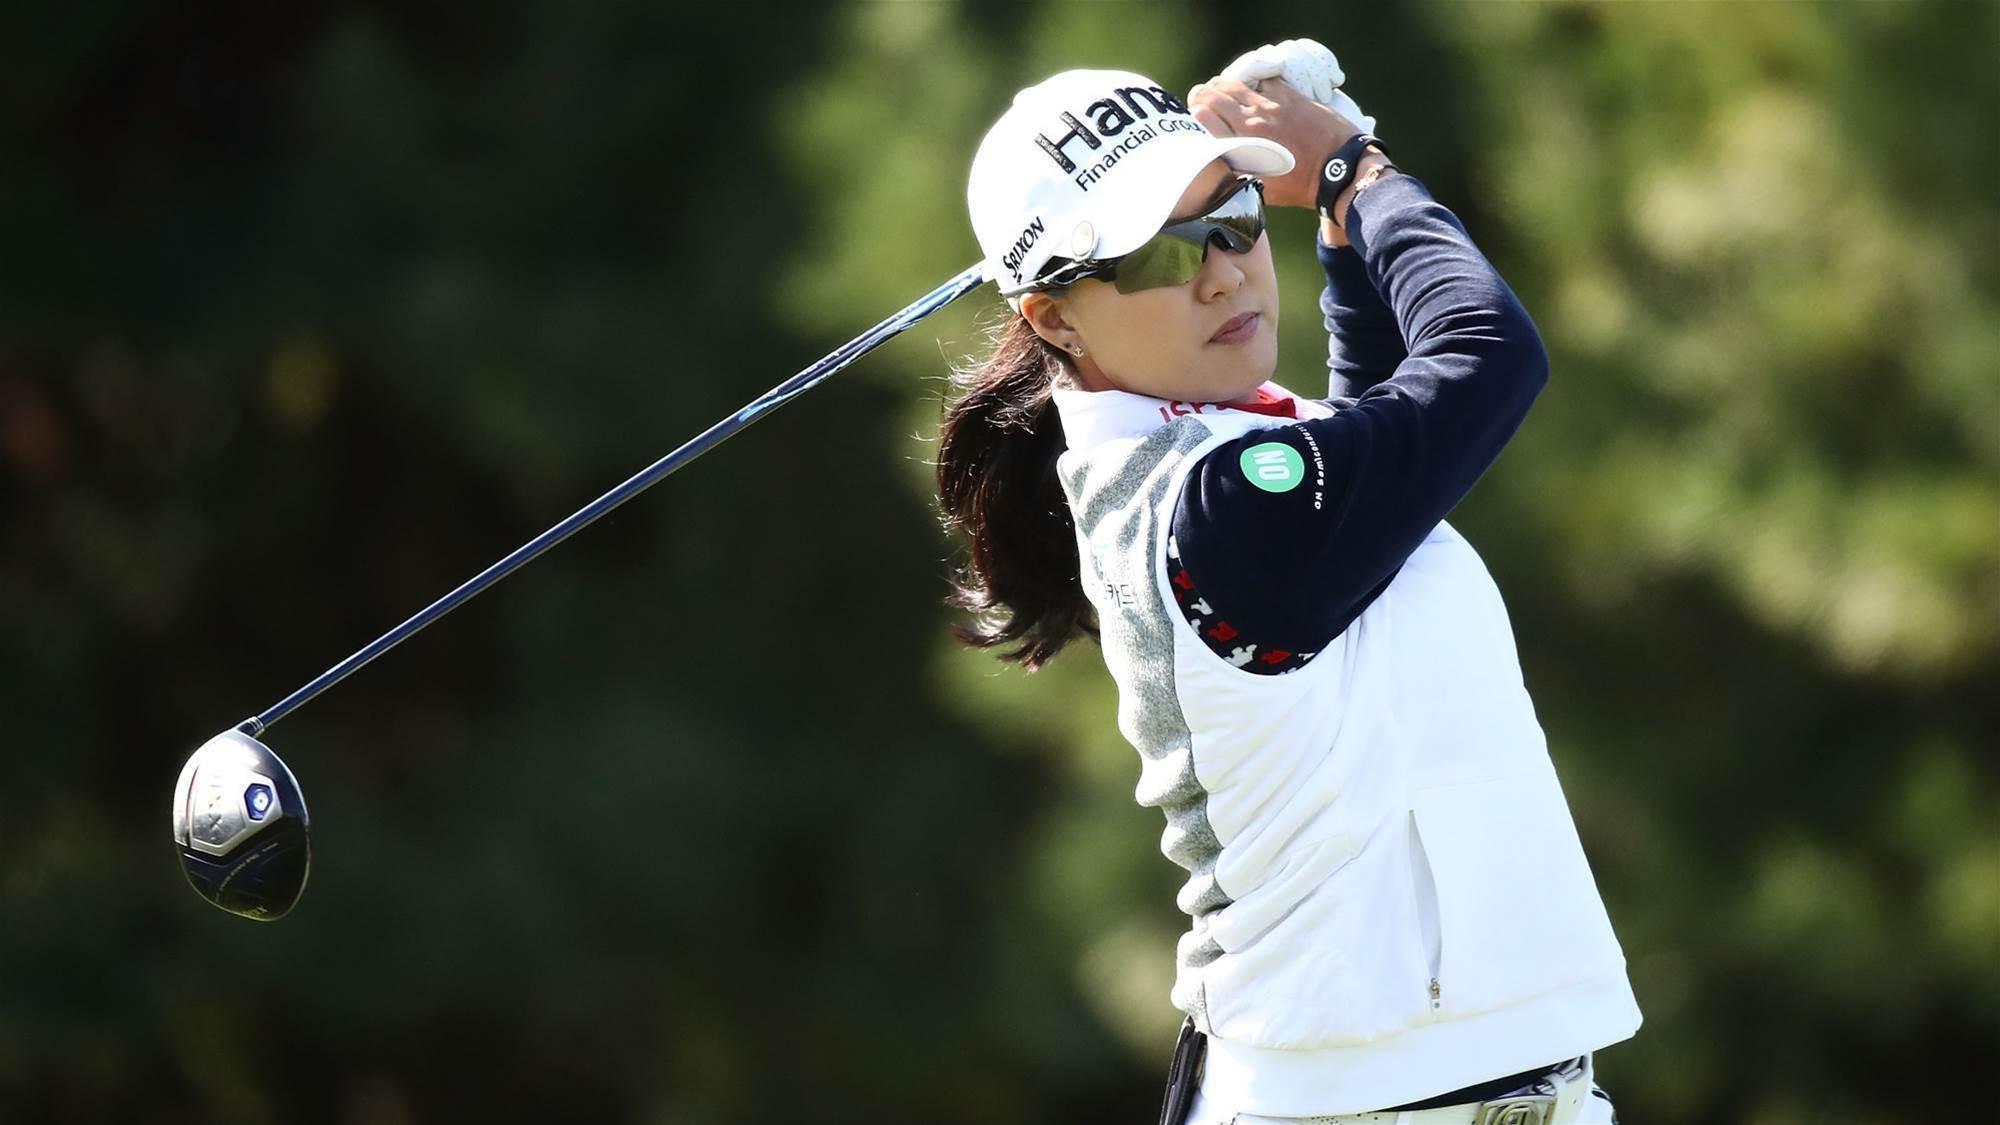 Minjee Lee heads Aussie quartet in Korea